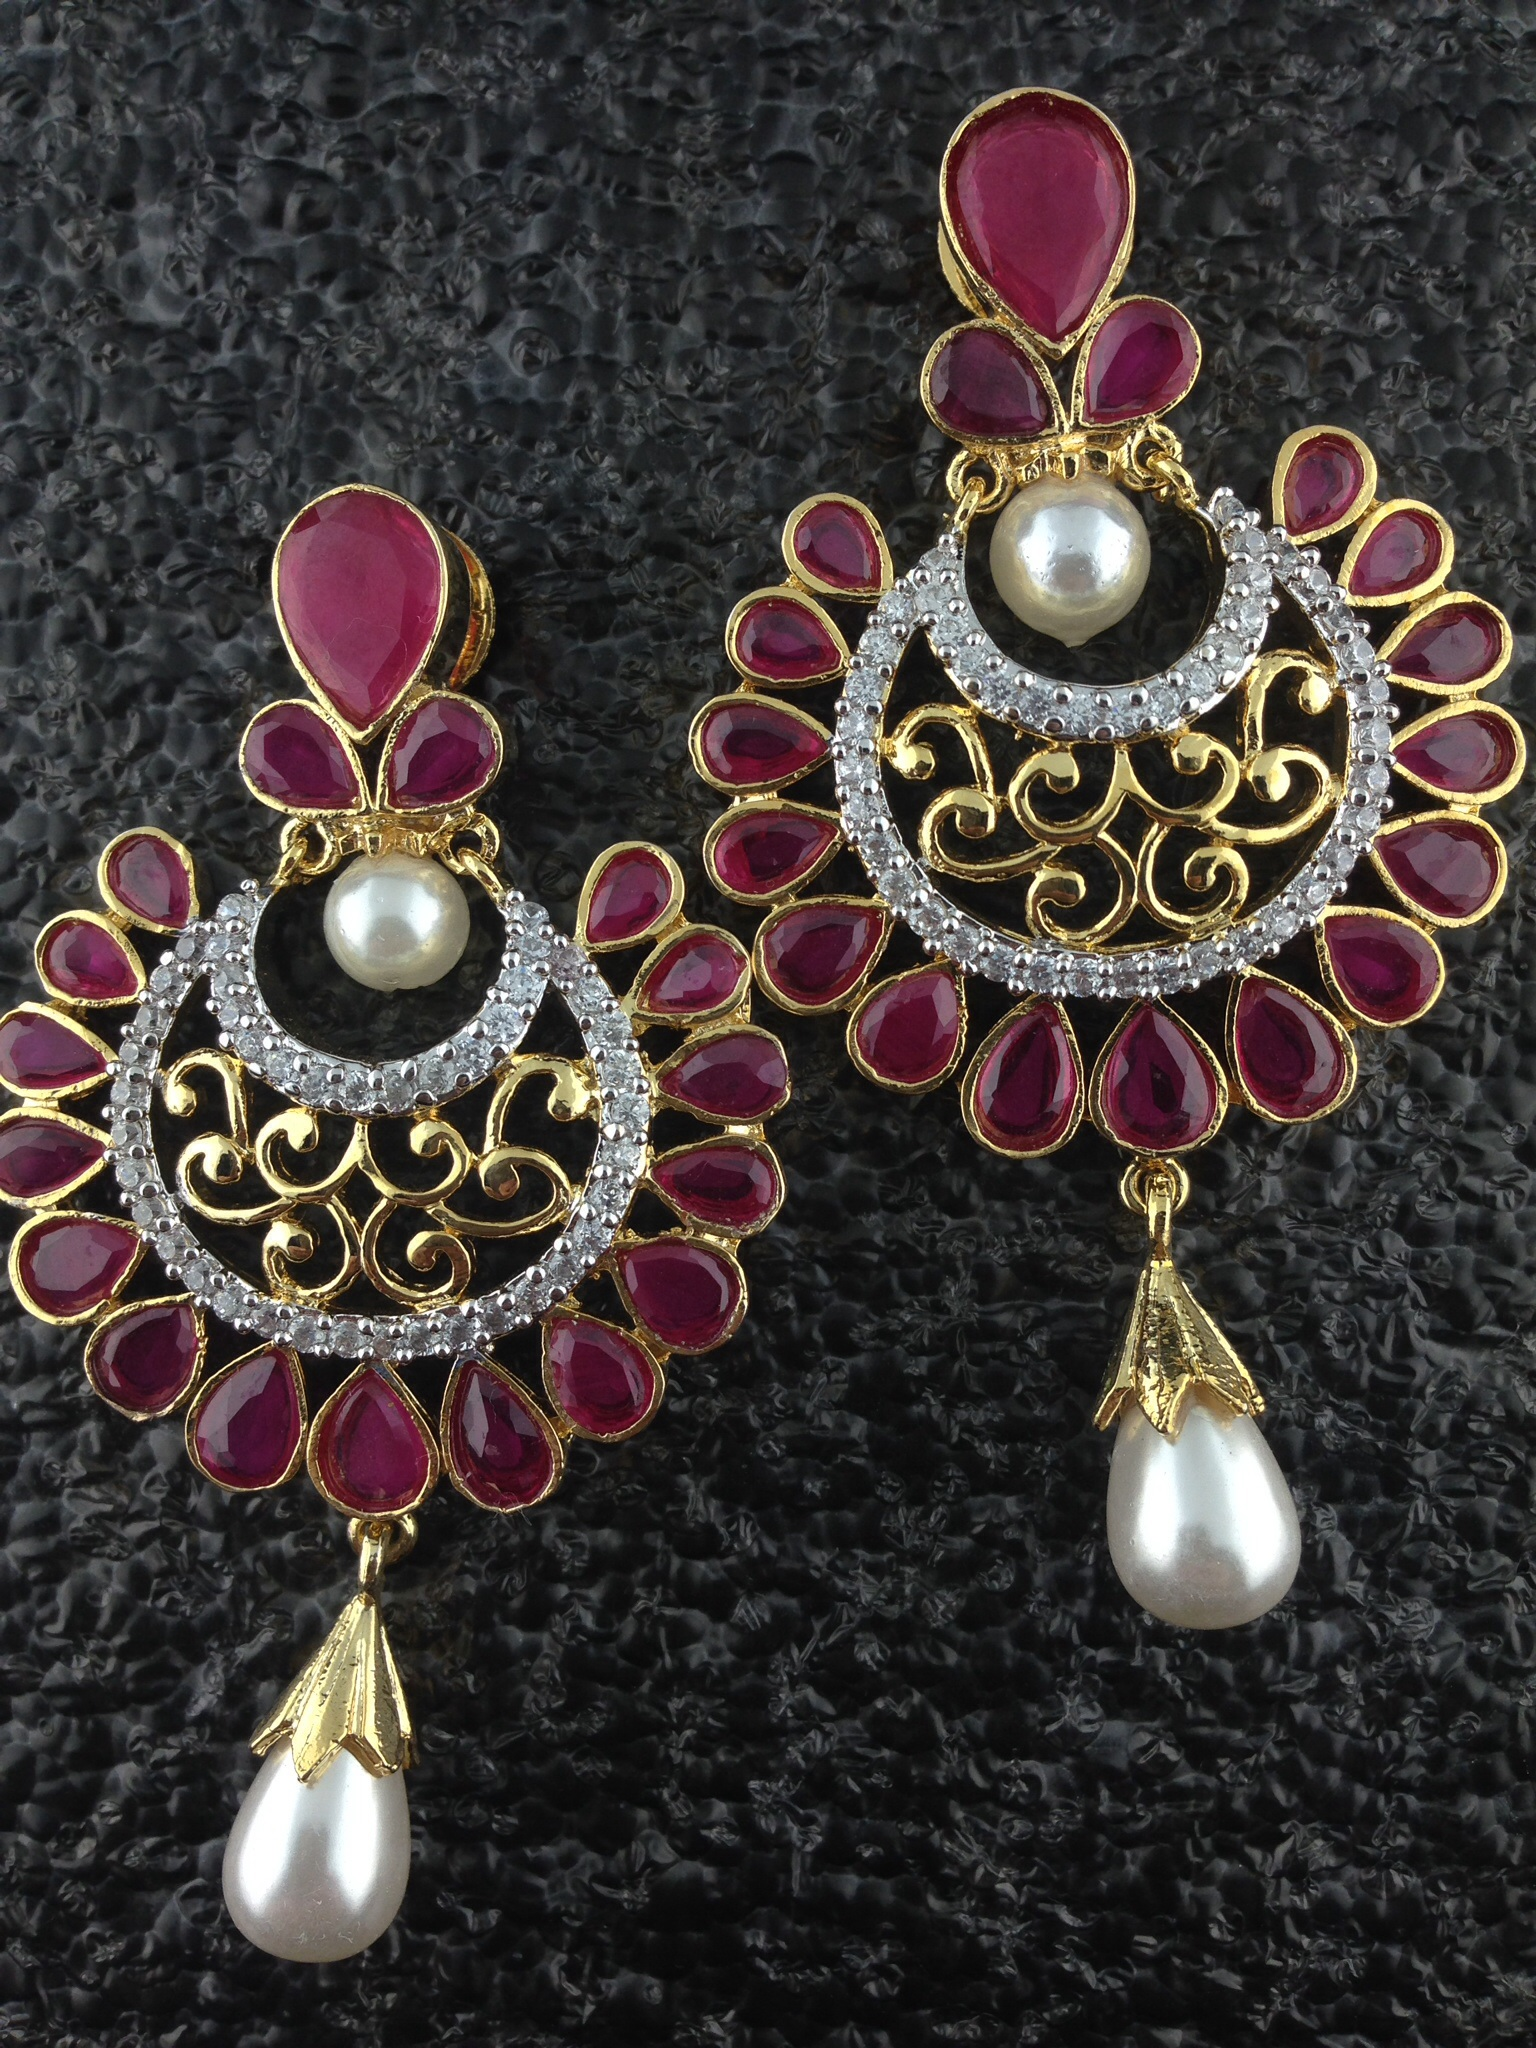 CZ Designer Circular Earrings With Rubies and Pearls.